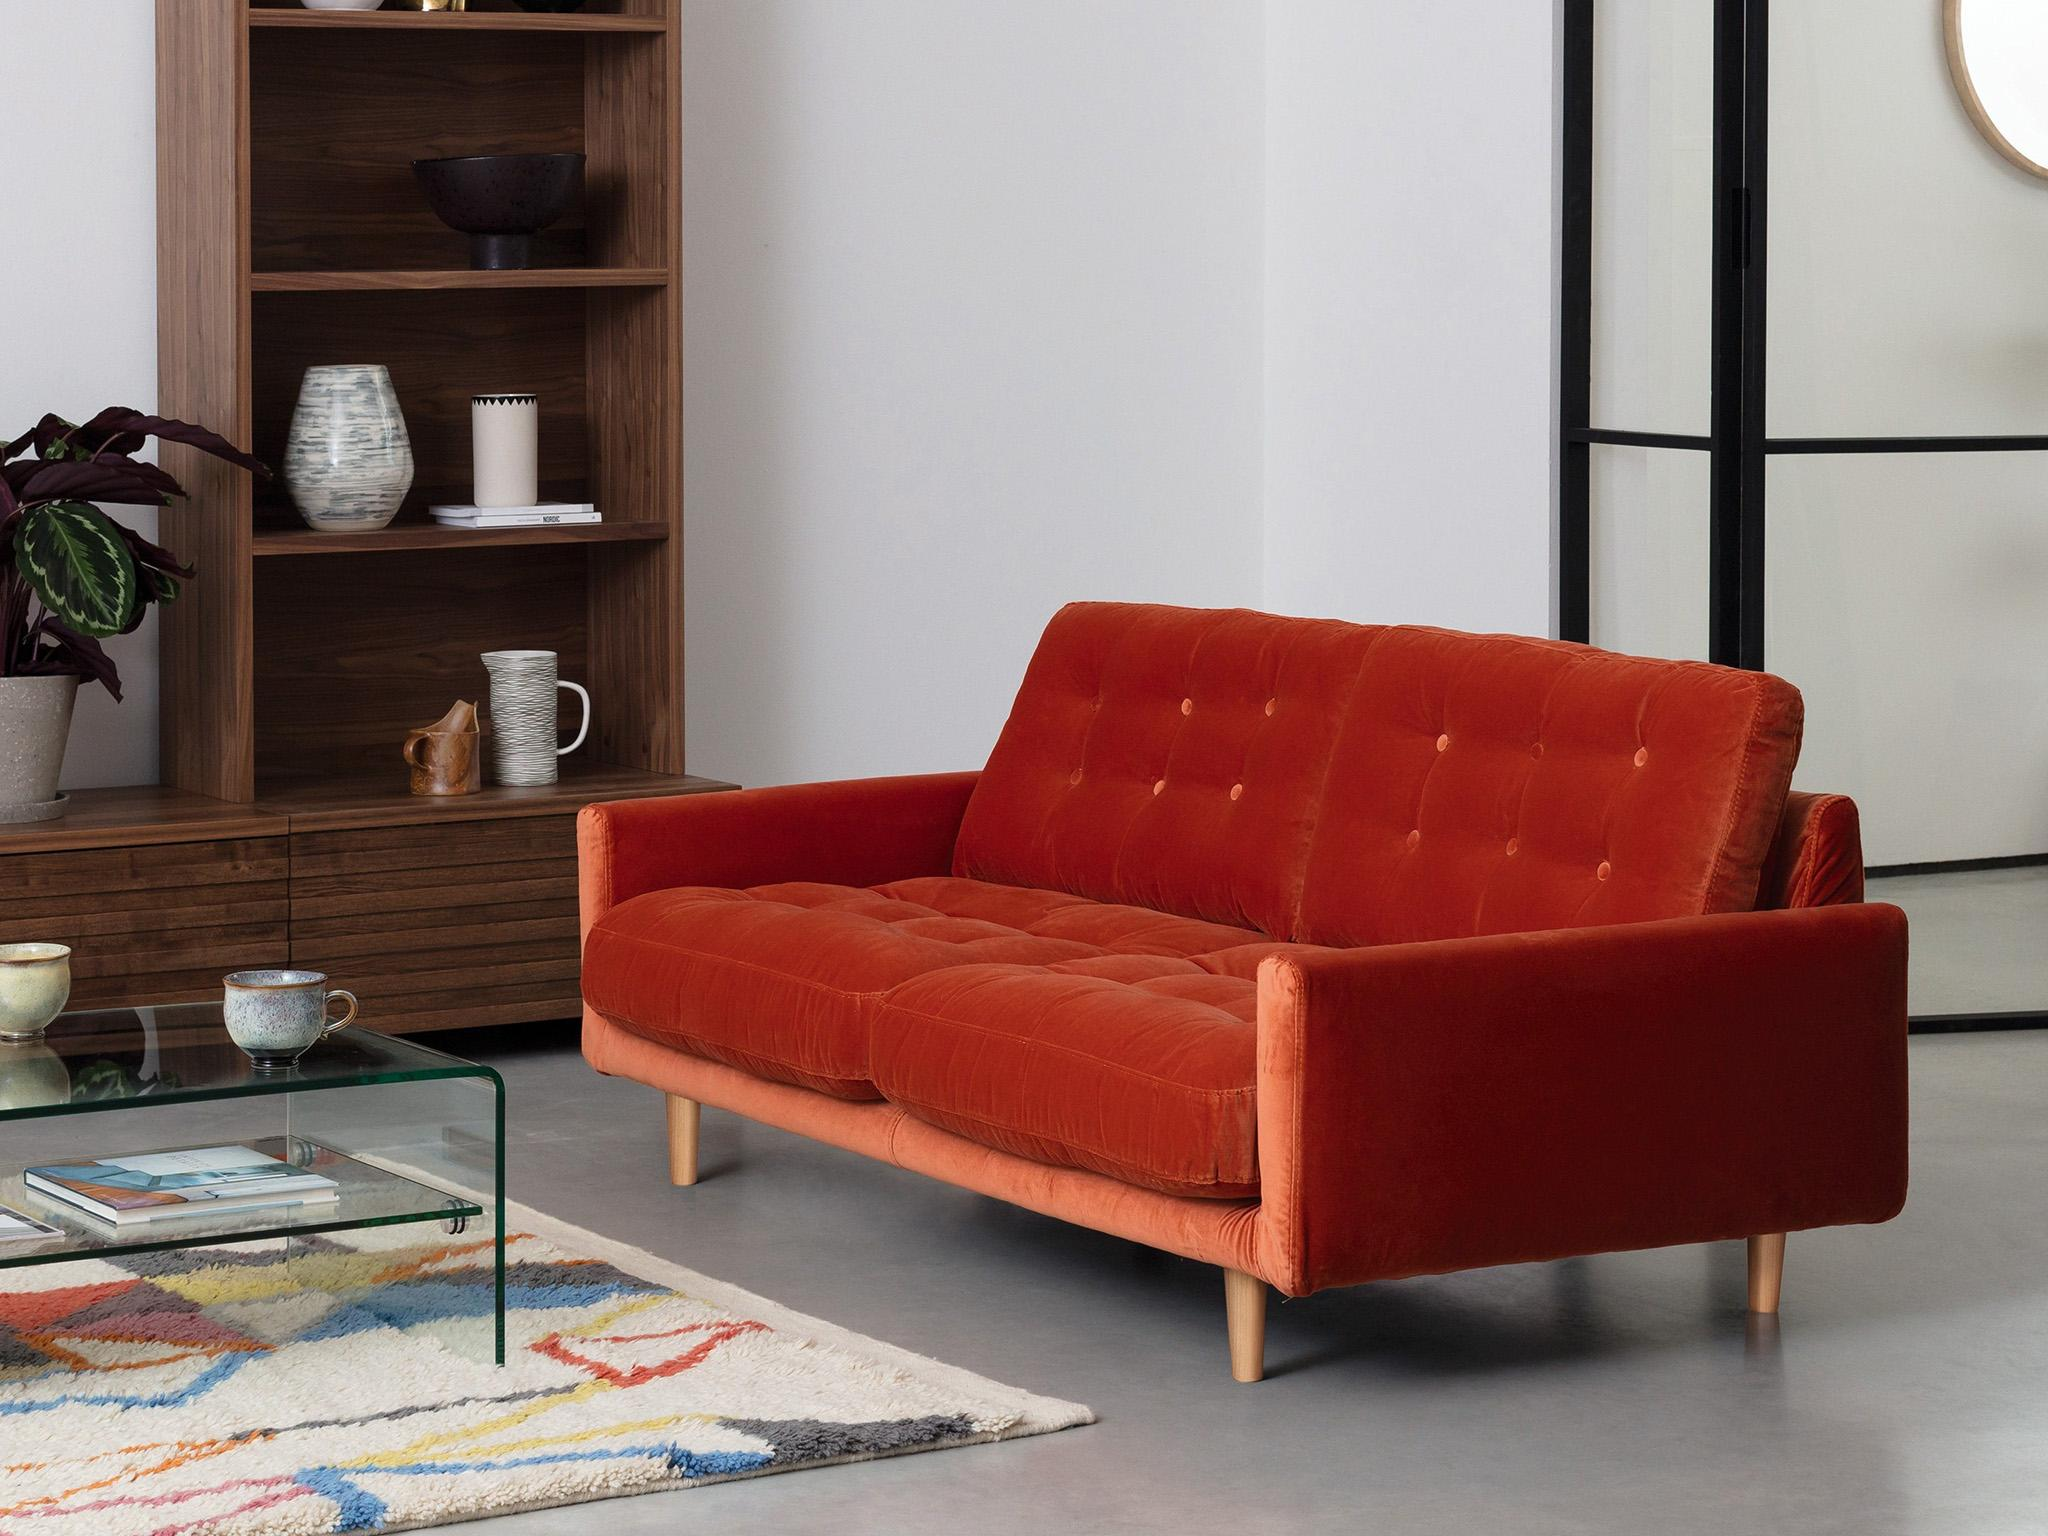 6 Best 2 Seater Sofas The Independent